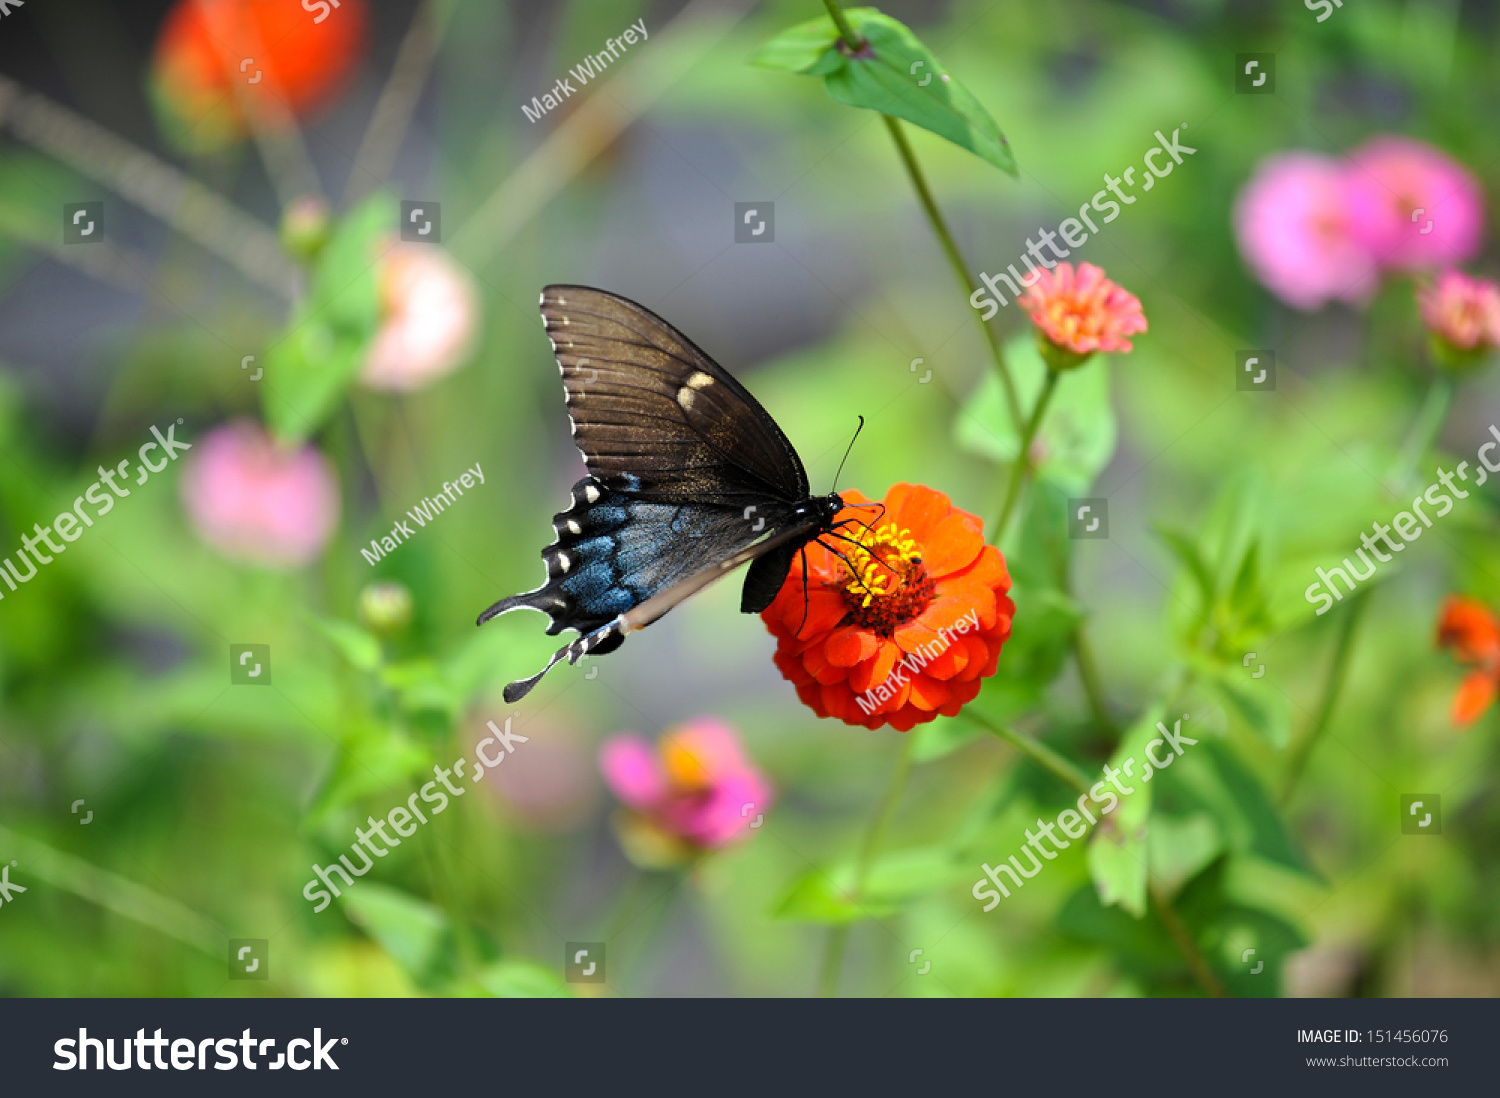 stock-photo-butterfly-on-a-group-of-wild